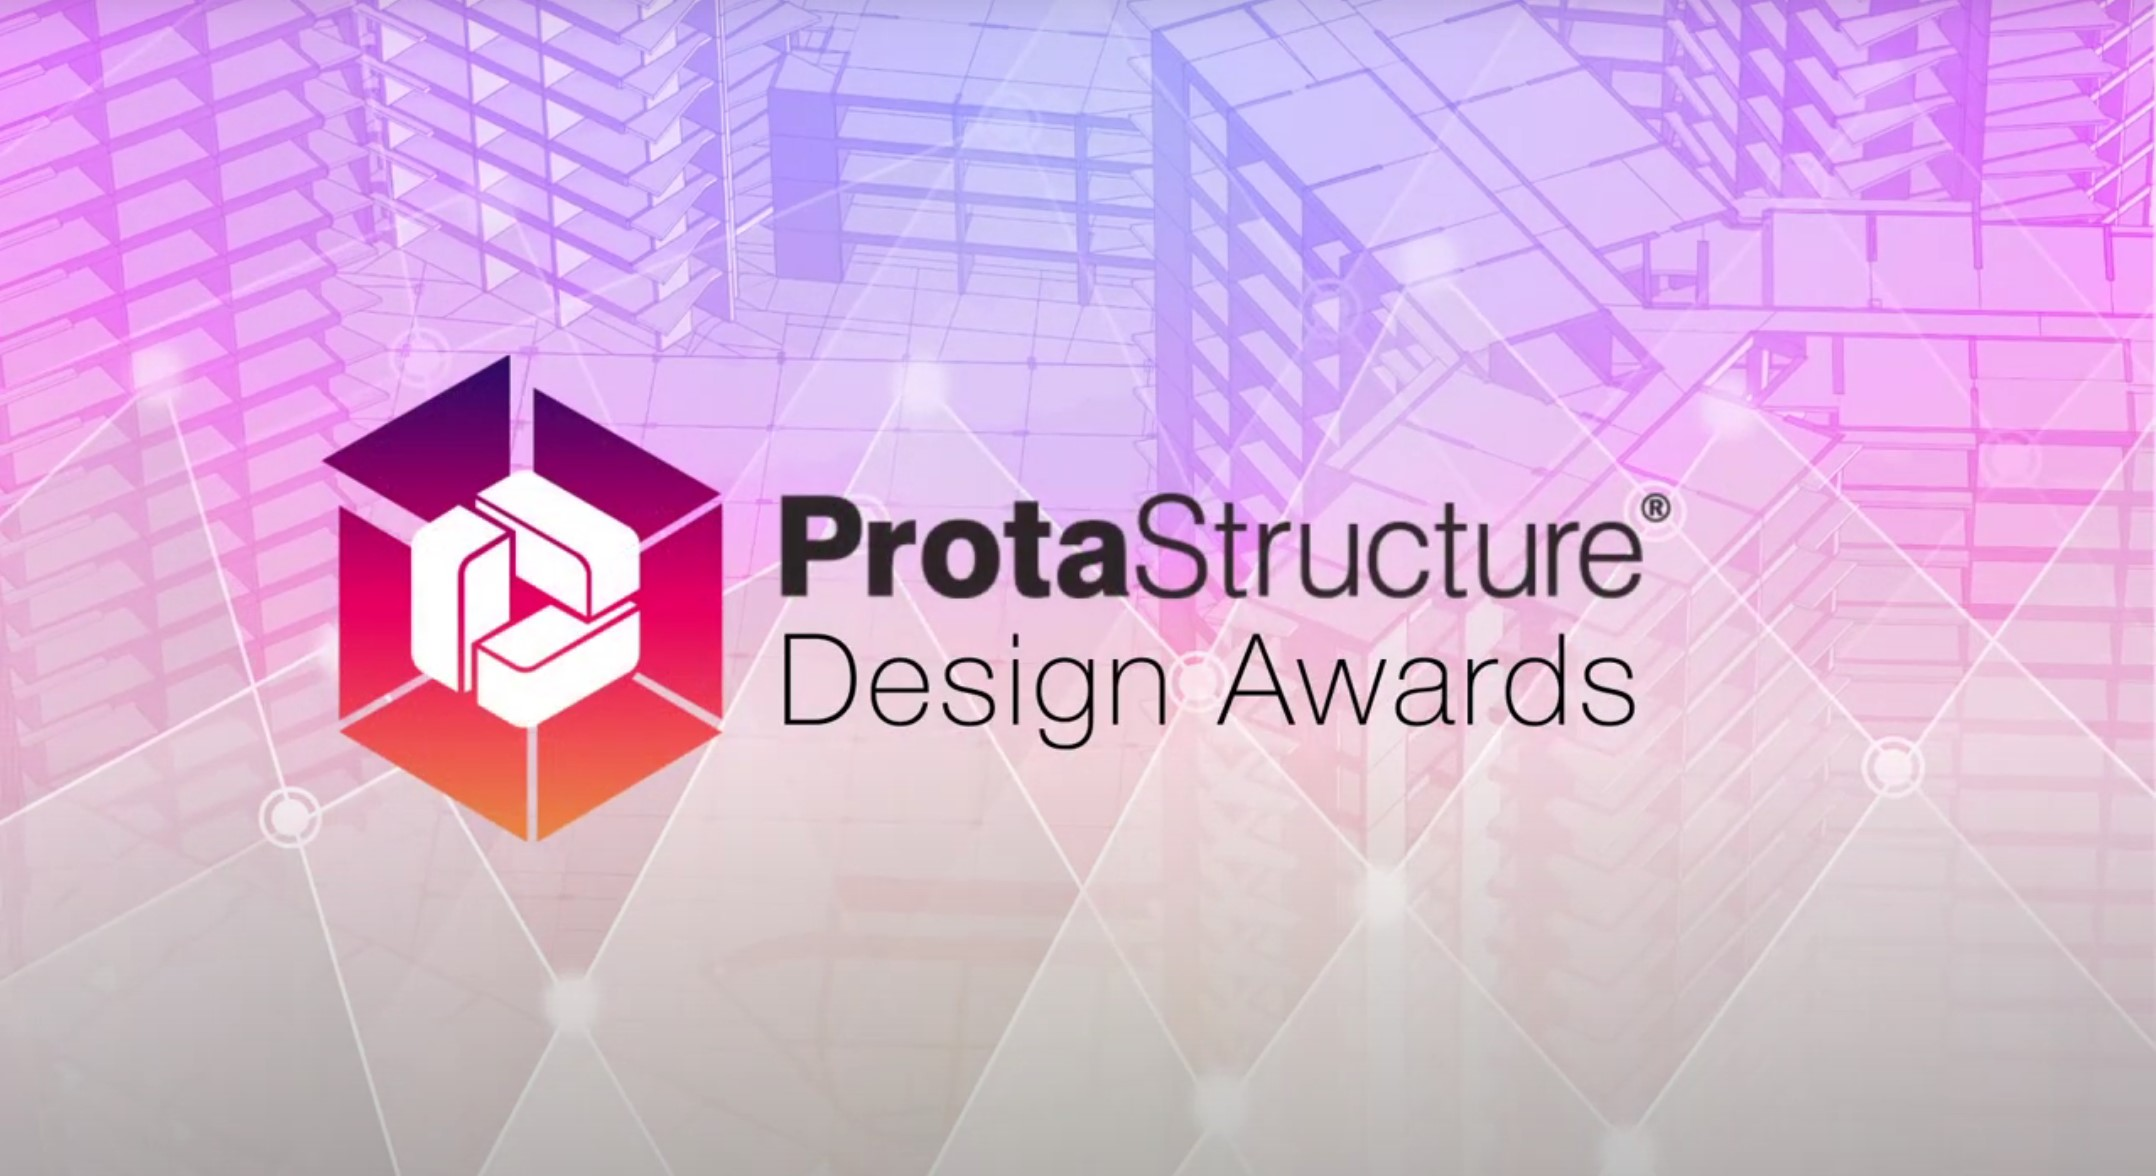 Announcing the ProtaStructure 2021 Design Awards